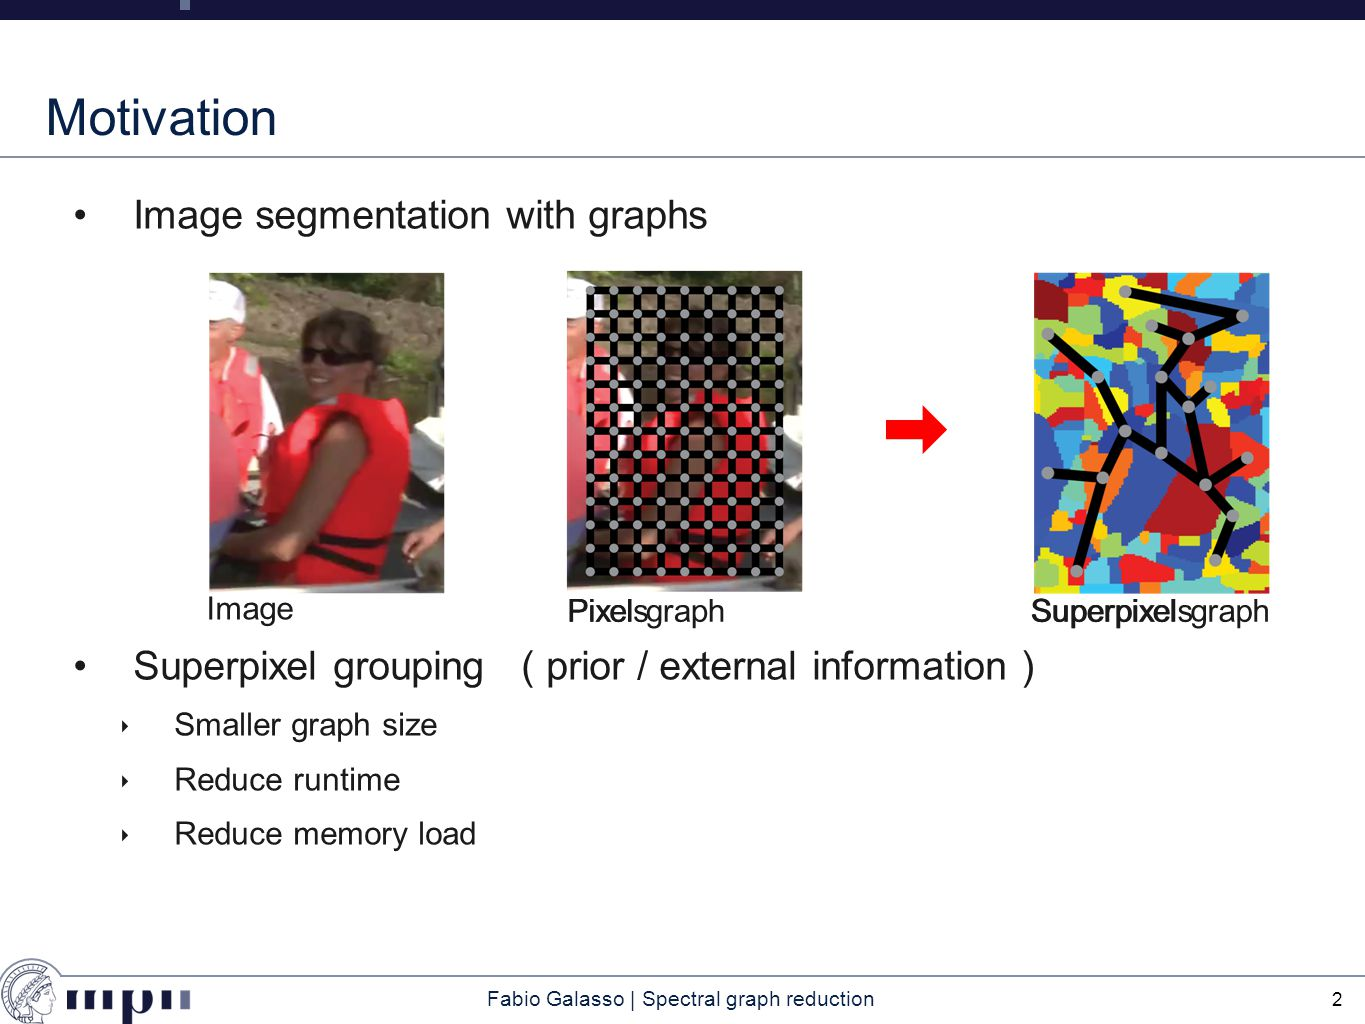 Fabio Galasso | Spectral graph reduction Motivation Image segmentation with graphs Superpixel grouping ( prior / external information ) ‣ Smaller graph size ‣ Reduce runtime ‣ Reduce memory load 3 Image Pixel graph Superpixel graph